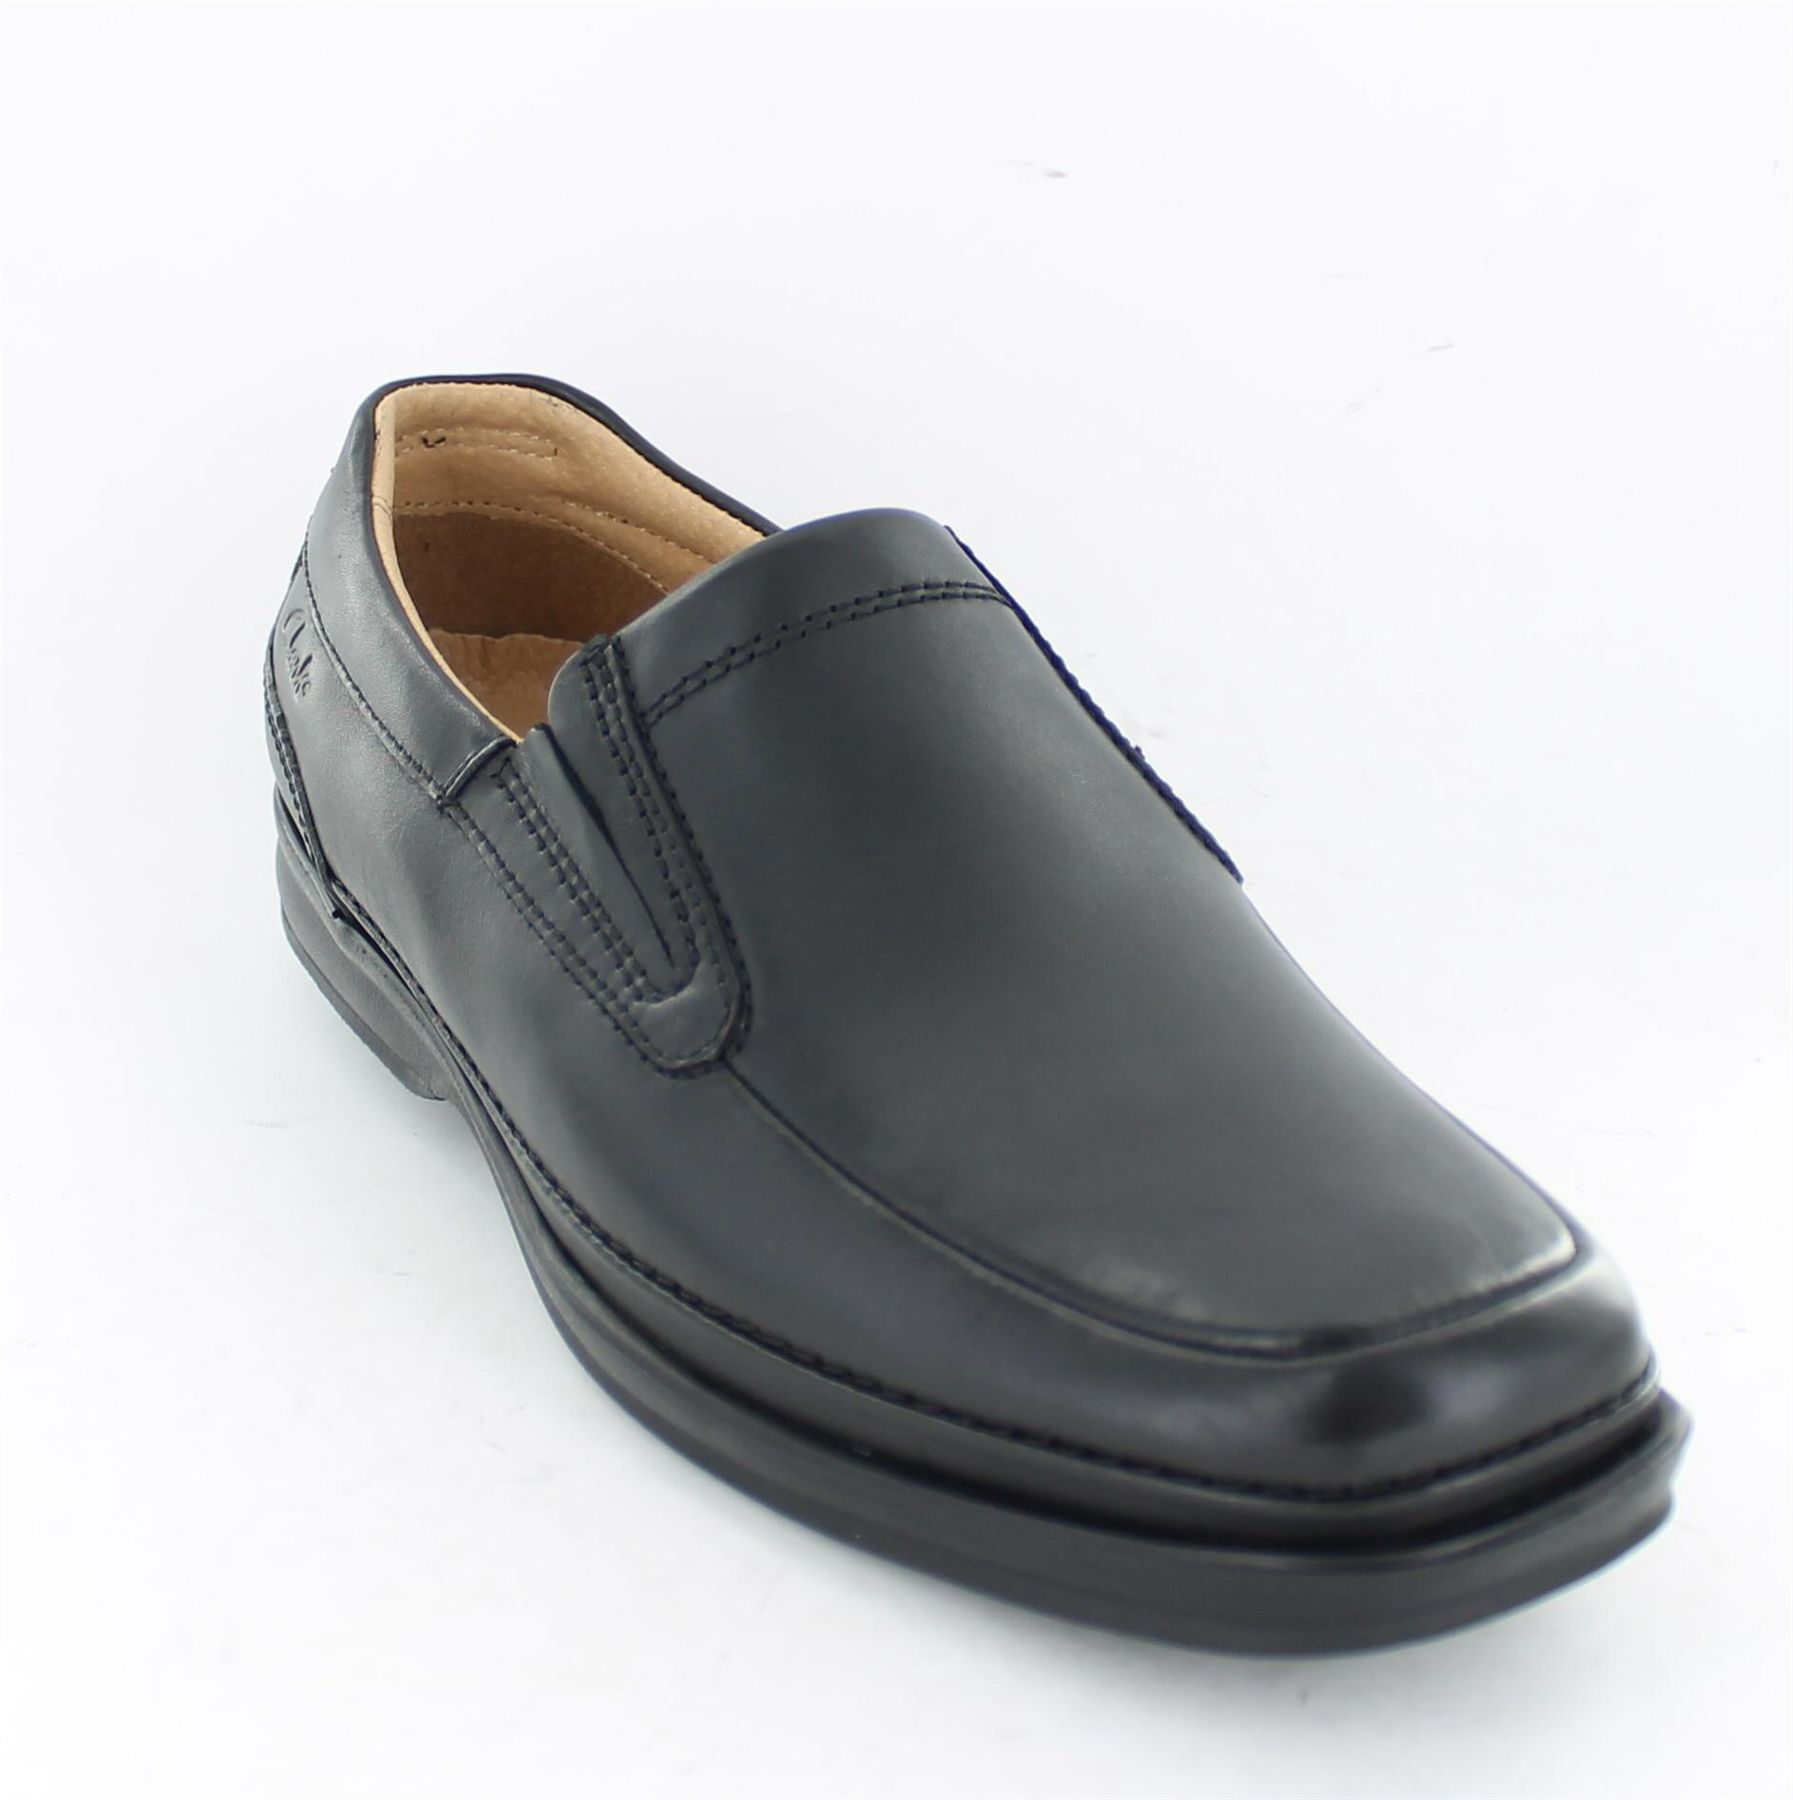 Clarks Jink Shoe - Men's. Sale $ Orig $ Not seen since: June 20, May no longer be available for this price.